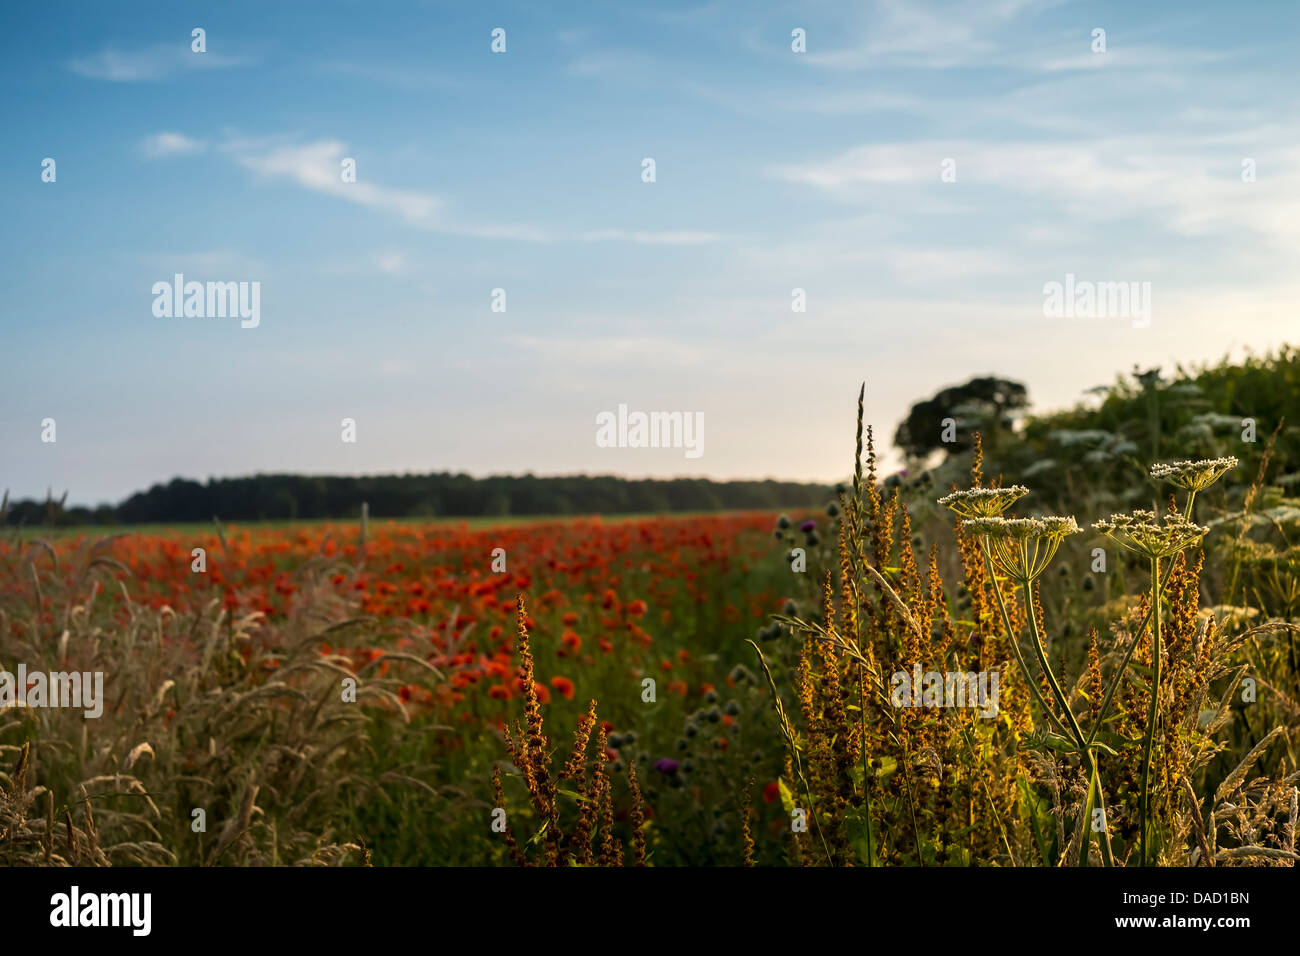 Hedgerow & poppy field on a summer evening, East Yorkshire - Stock Image